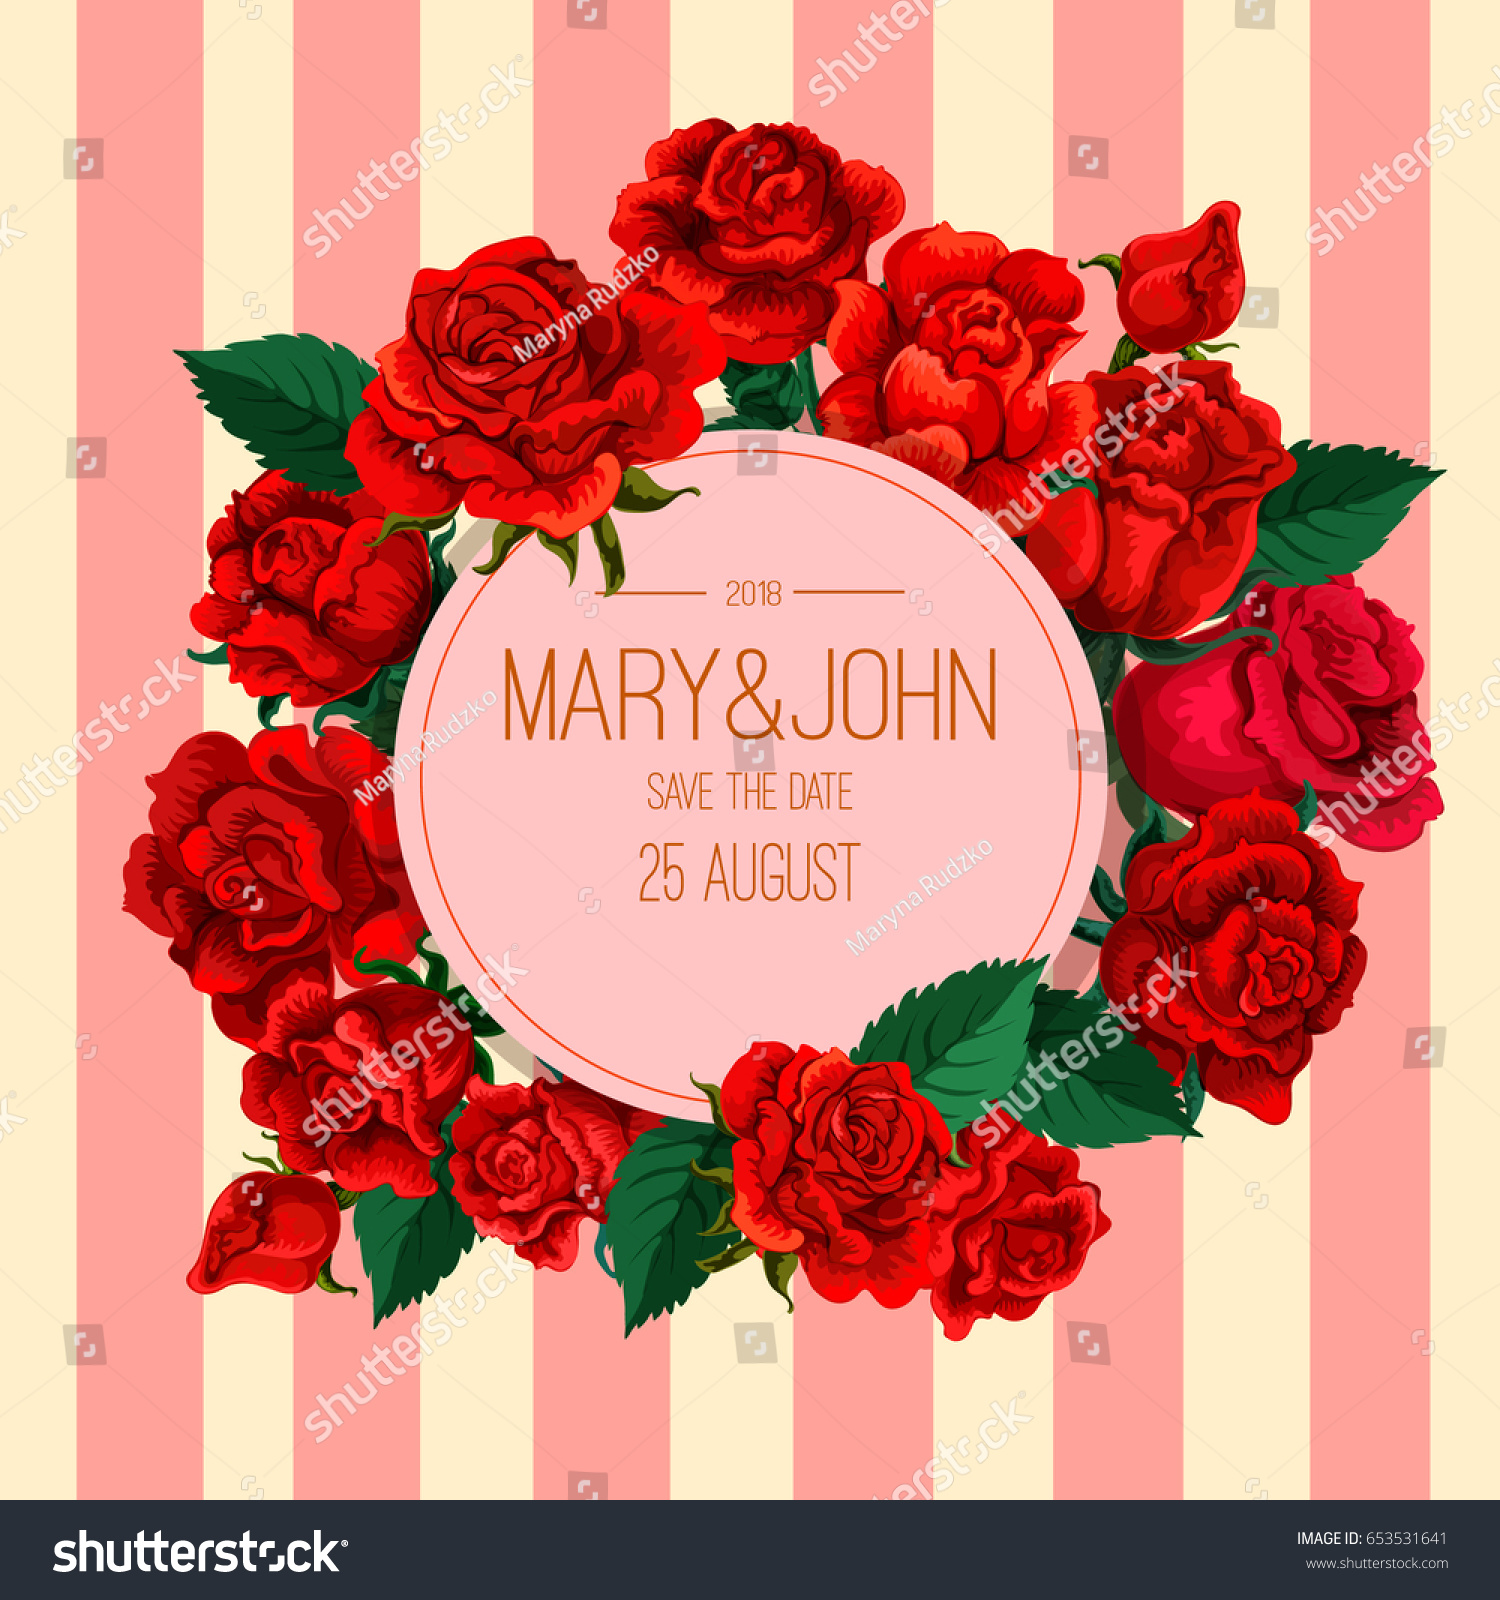 Vector Red Rose Decorative Composition Invitation Stock Vector ...